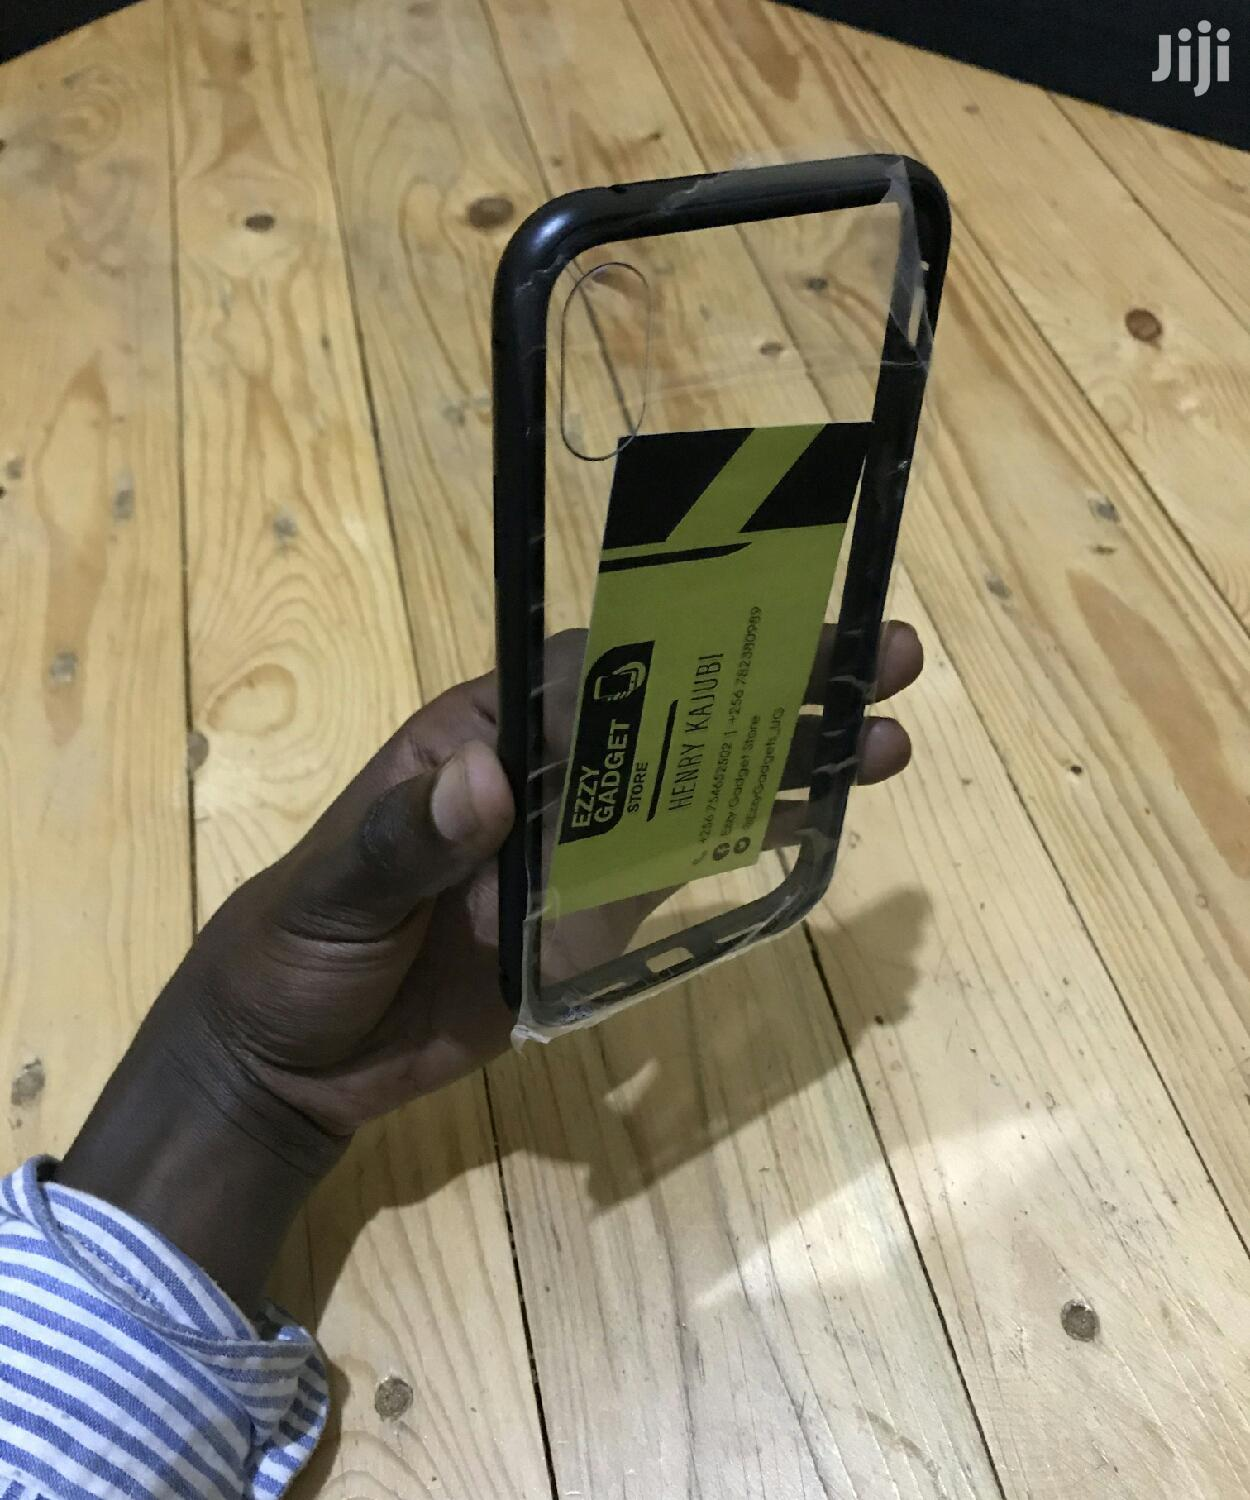 360 Degree 100% Protection Stylish Cover For iPhone X/Xs-black & Red   Accessories for Mobile Phones & Tablets for sale in Kampala, Central Region, Uganda